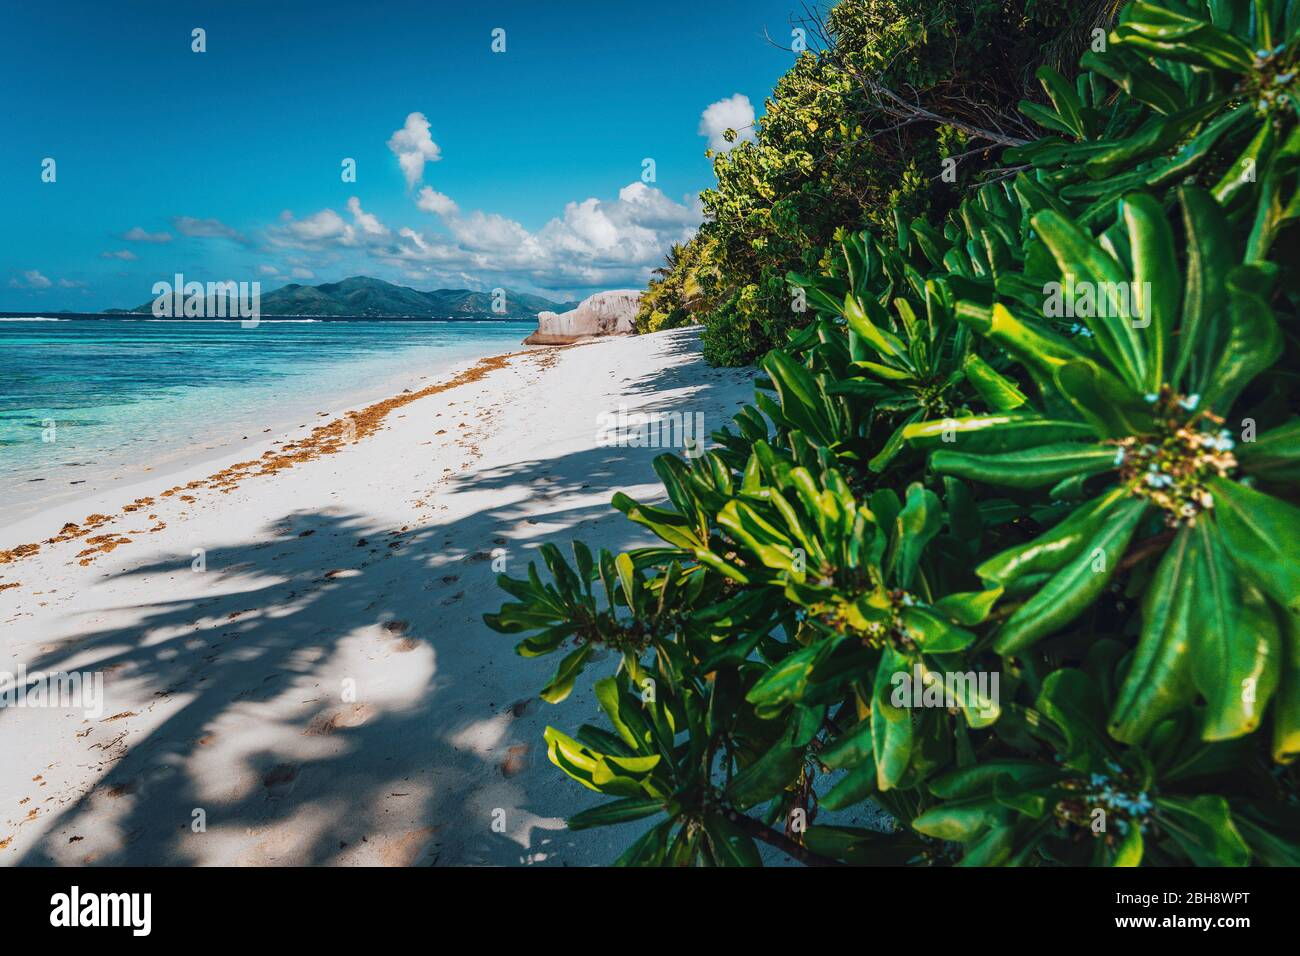 Tropical plants at famous Anse Source d'Argent beach on island La Digue in Seychelles. Exotic paradise travel scenery concept shot. Stock Photo